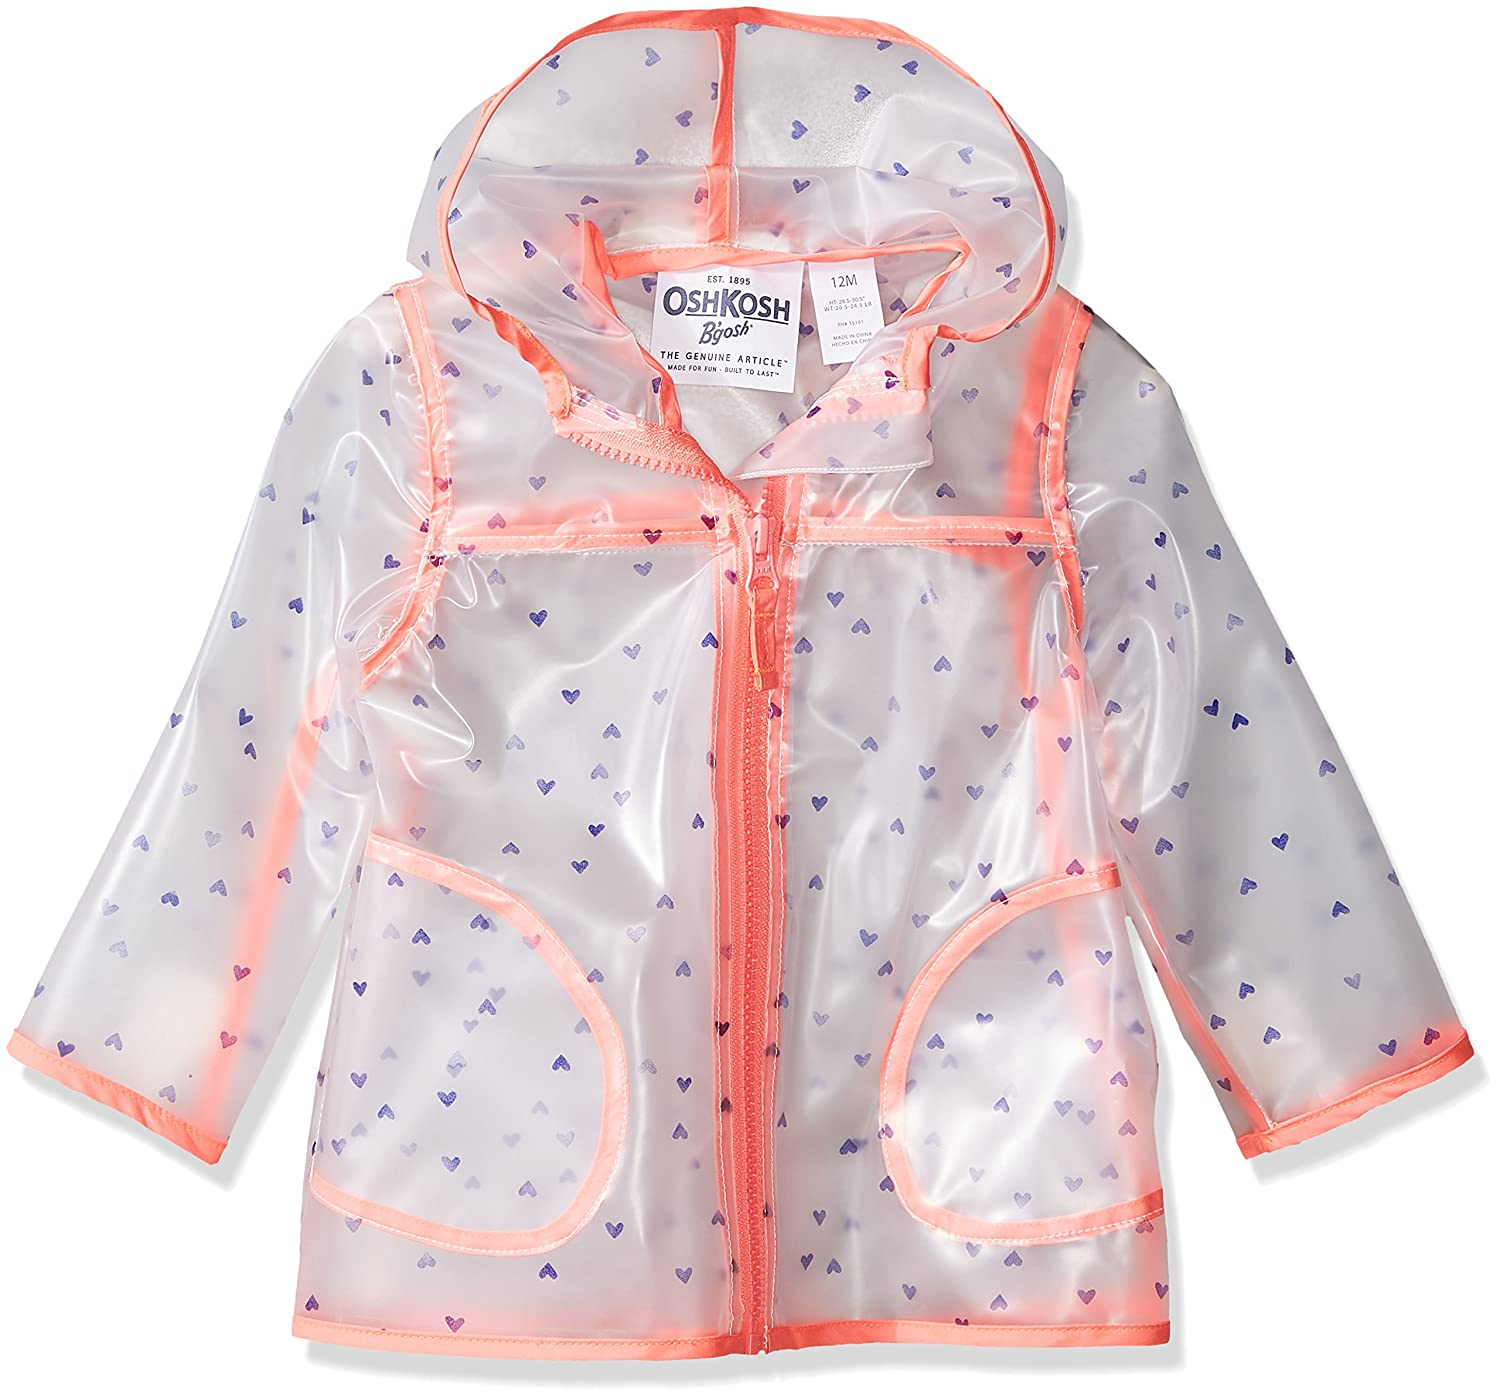 7df1e9a79187 Amazon.com  Osh Kosh Baby Girls Translucent Rainslicker Rain Jacket ...